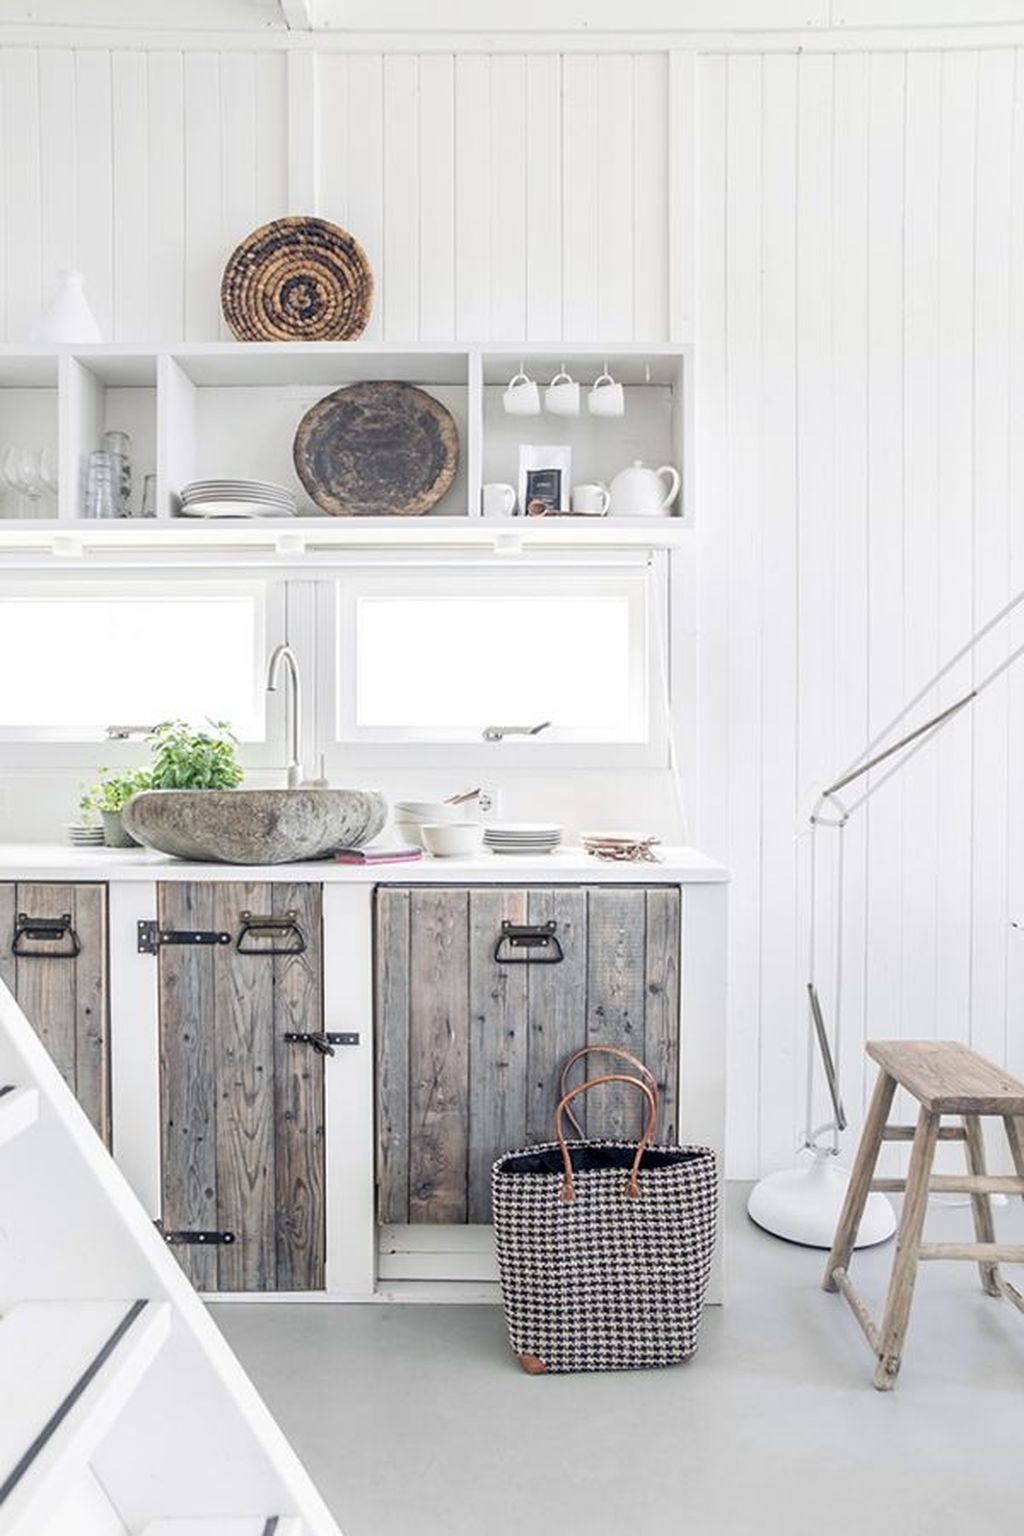 31 stunning farmhouse kitchen ideas on a budget ideal integrated timeless trends with images on farmhouse kitchen on a budget id=55499